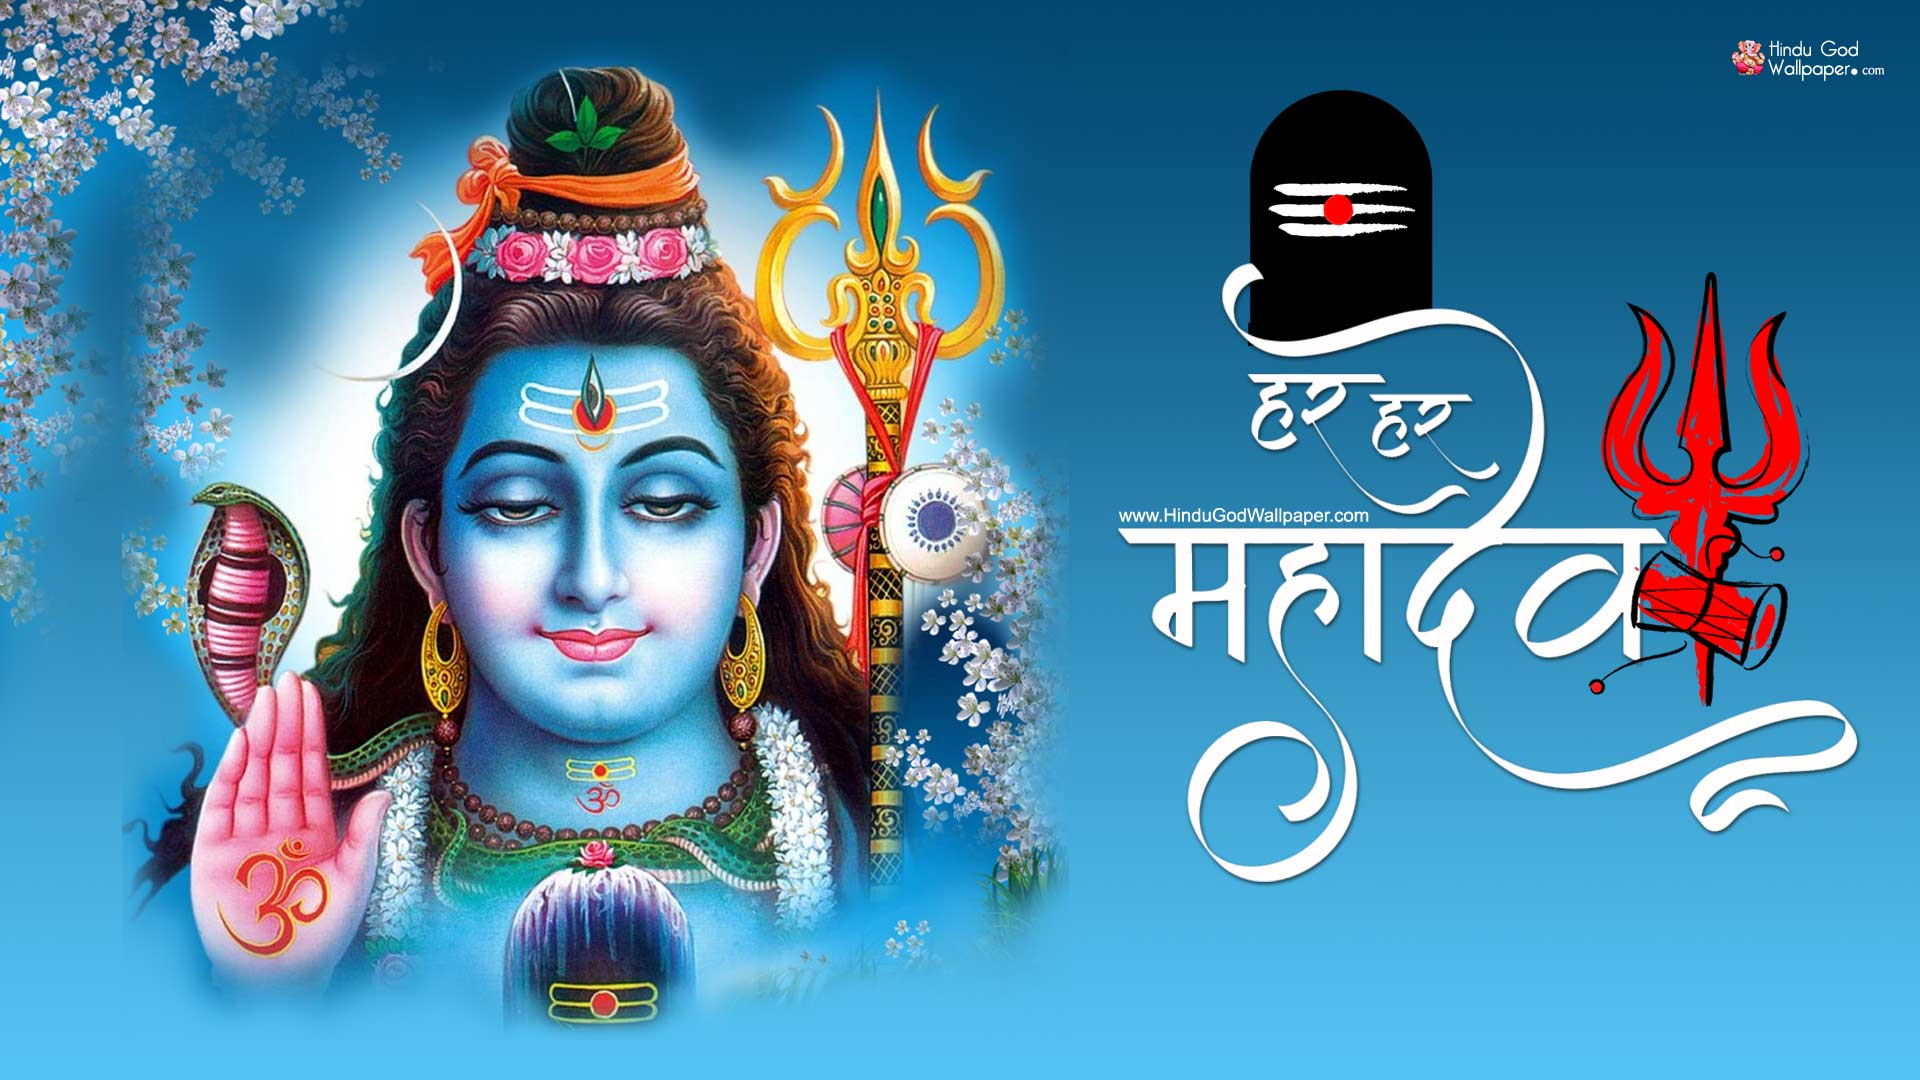 1080p Har Har Mahadev Hd Wallpapers 1920x1080 Free Download